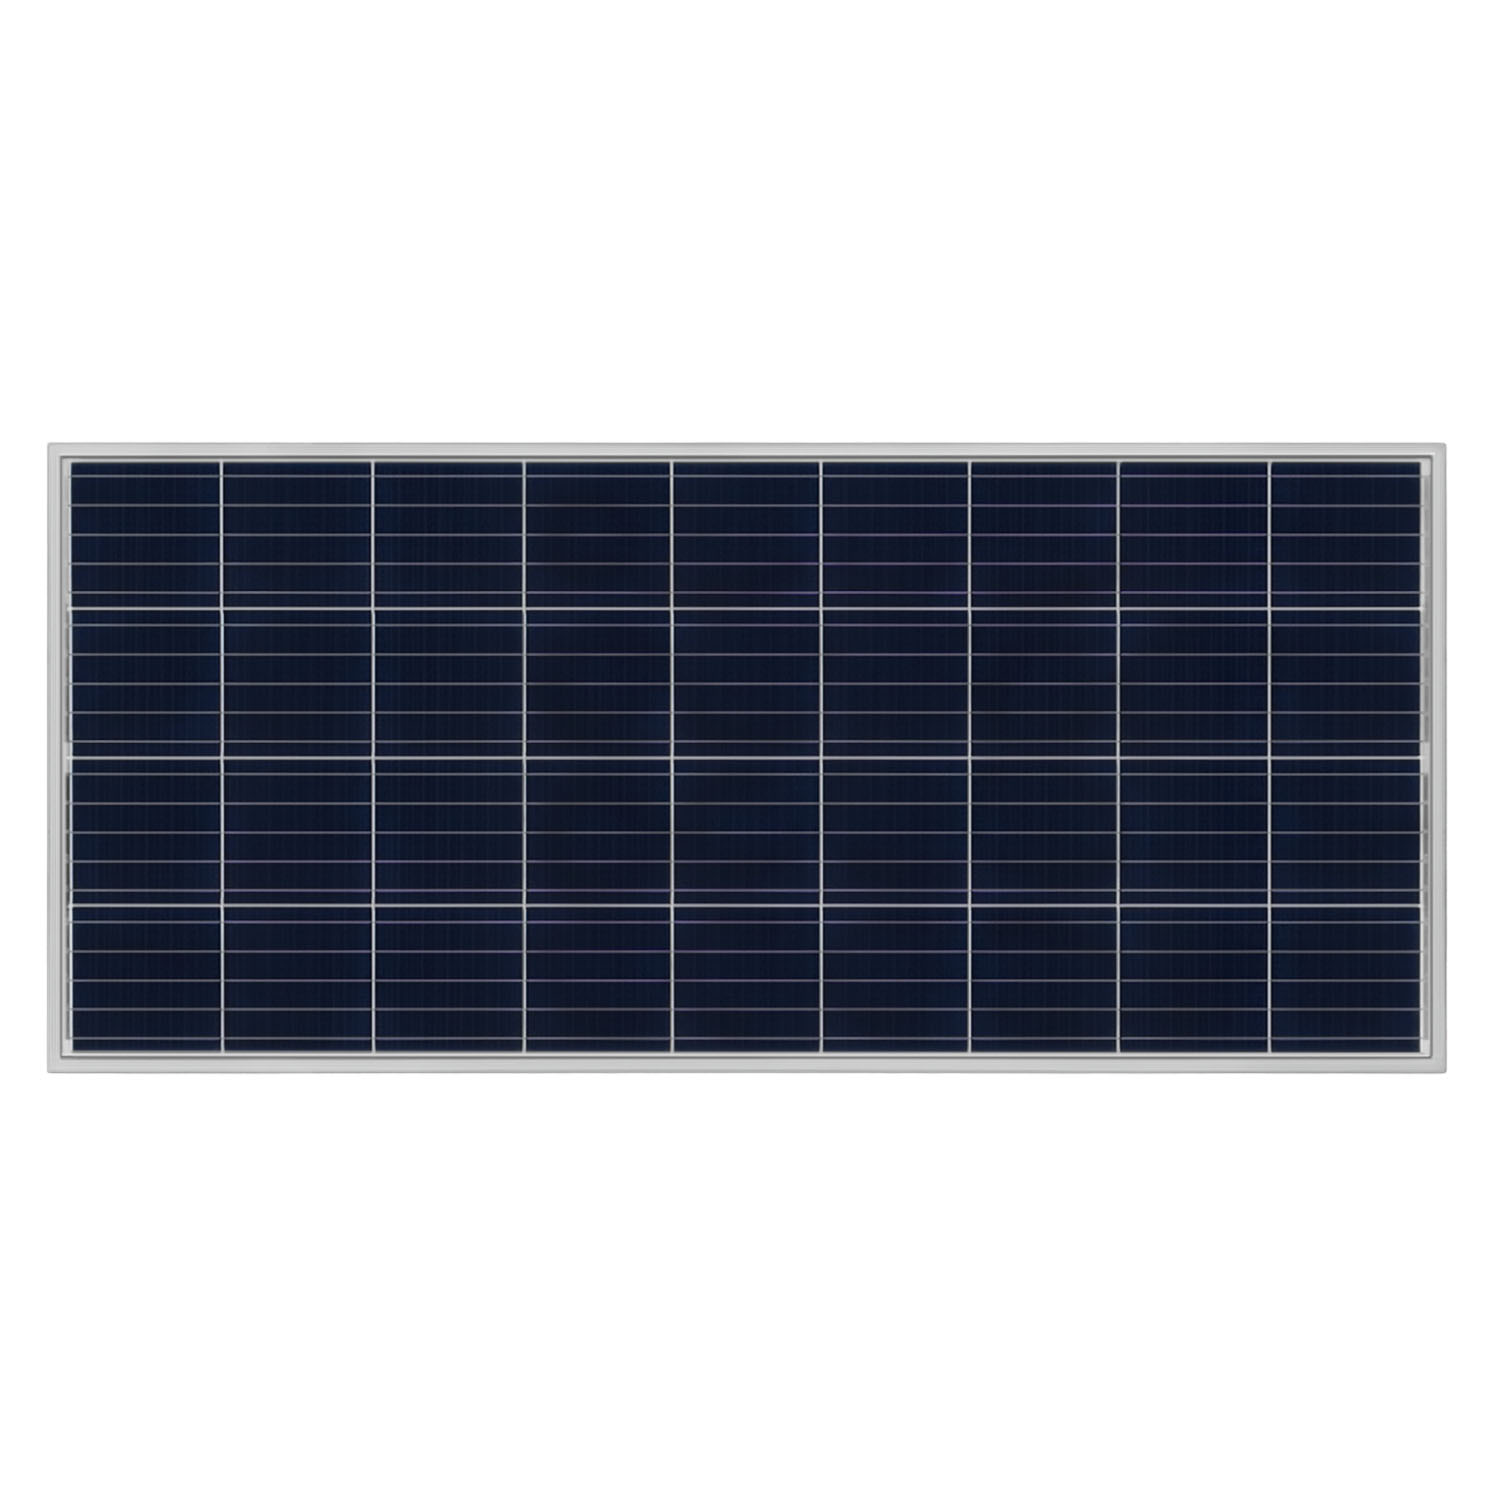 160 Watt 12V Solar Panel Battery Charger RV Boat Camping Off Grid